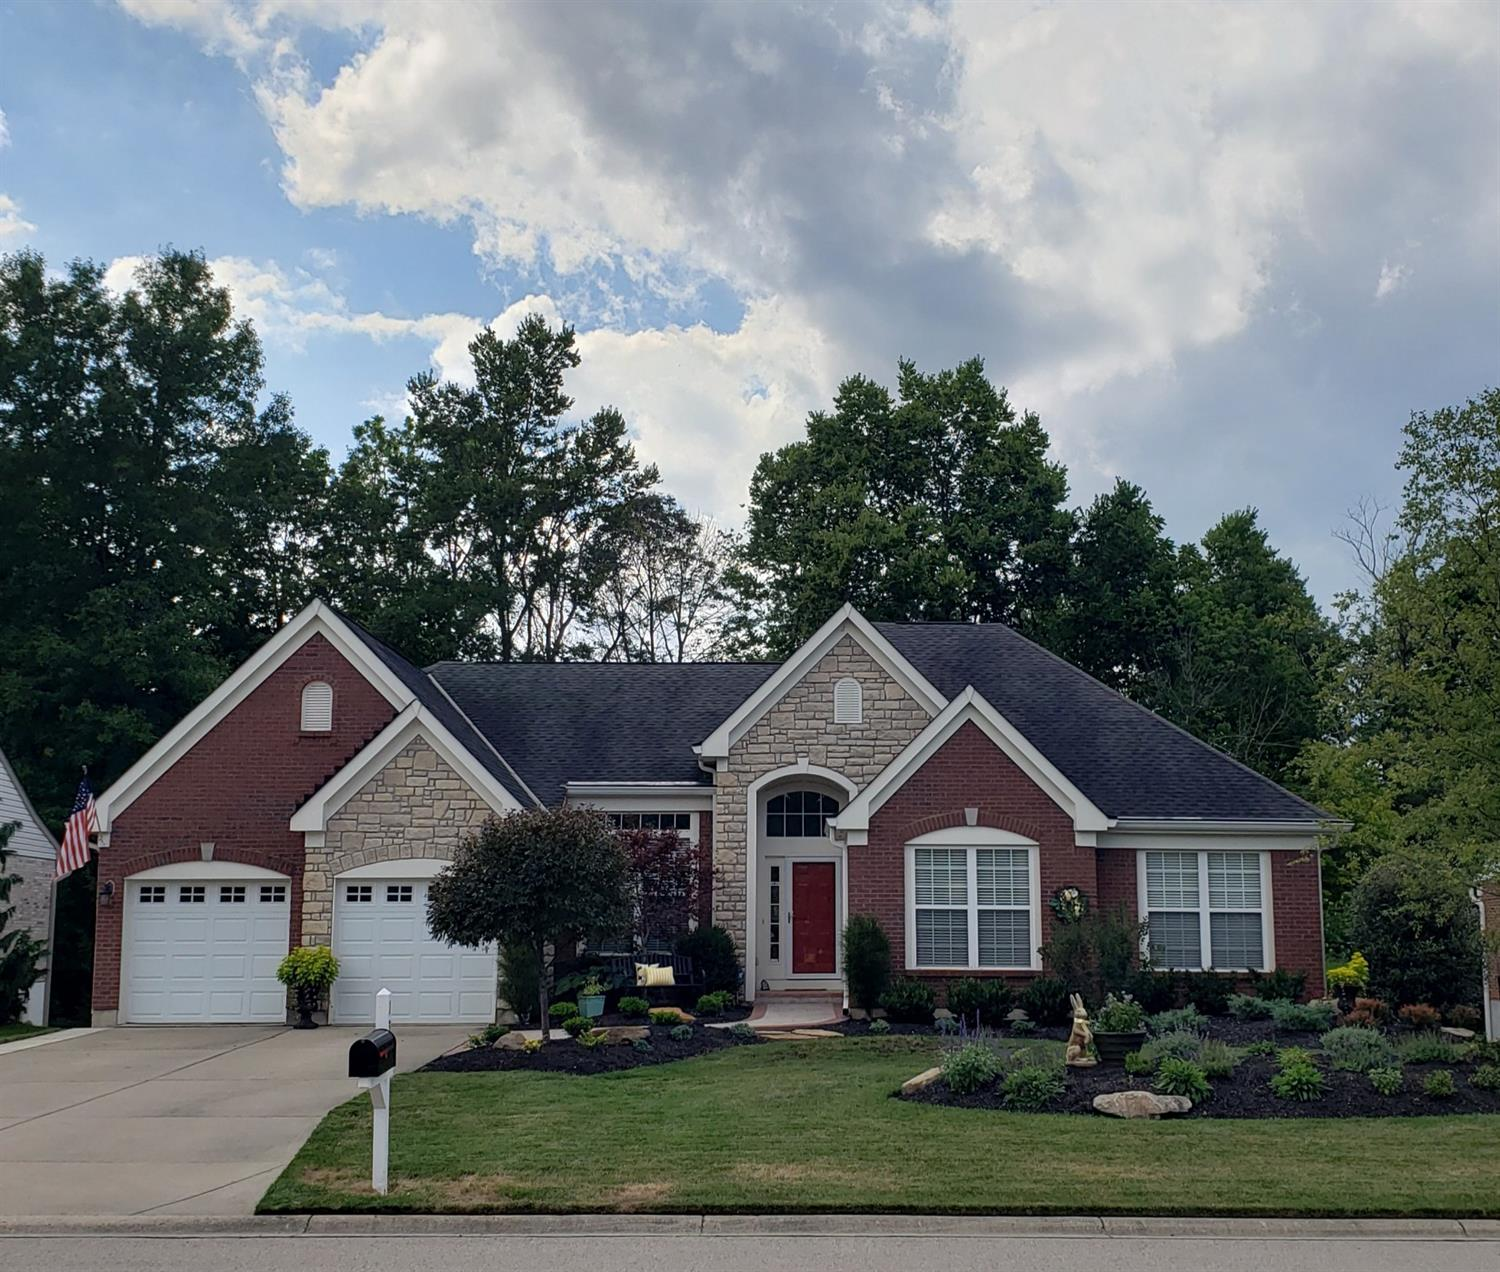 Property for sale at 130 Kilkerry Way, Loveland,  Ohio 45140